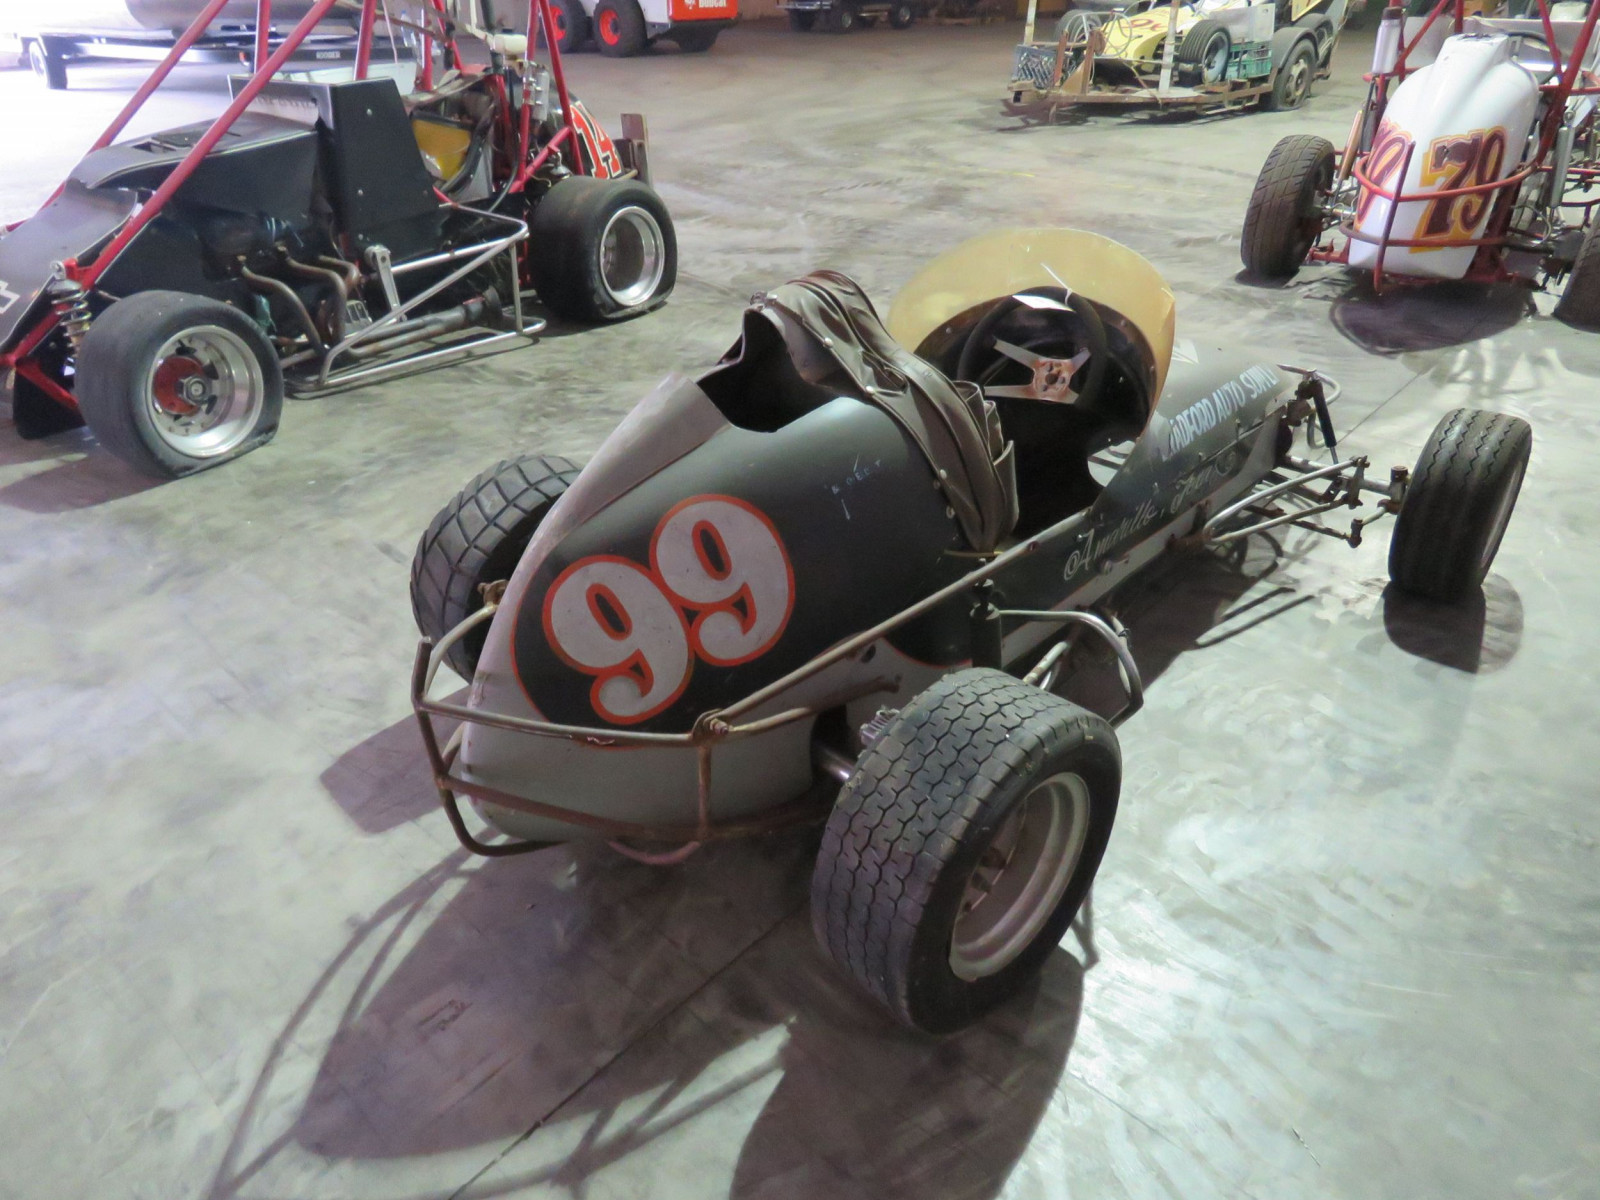 Vintage  1/2 scale Midget Sprint Race Car - Image 5